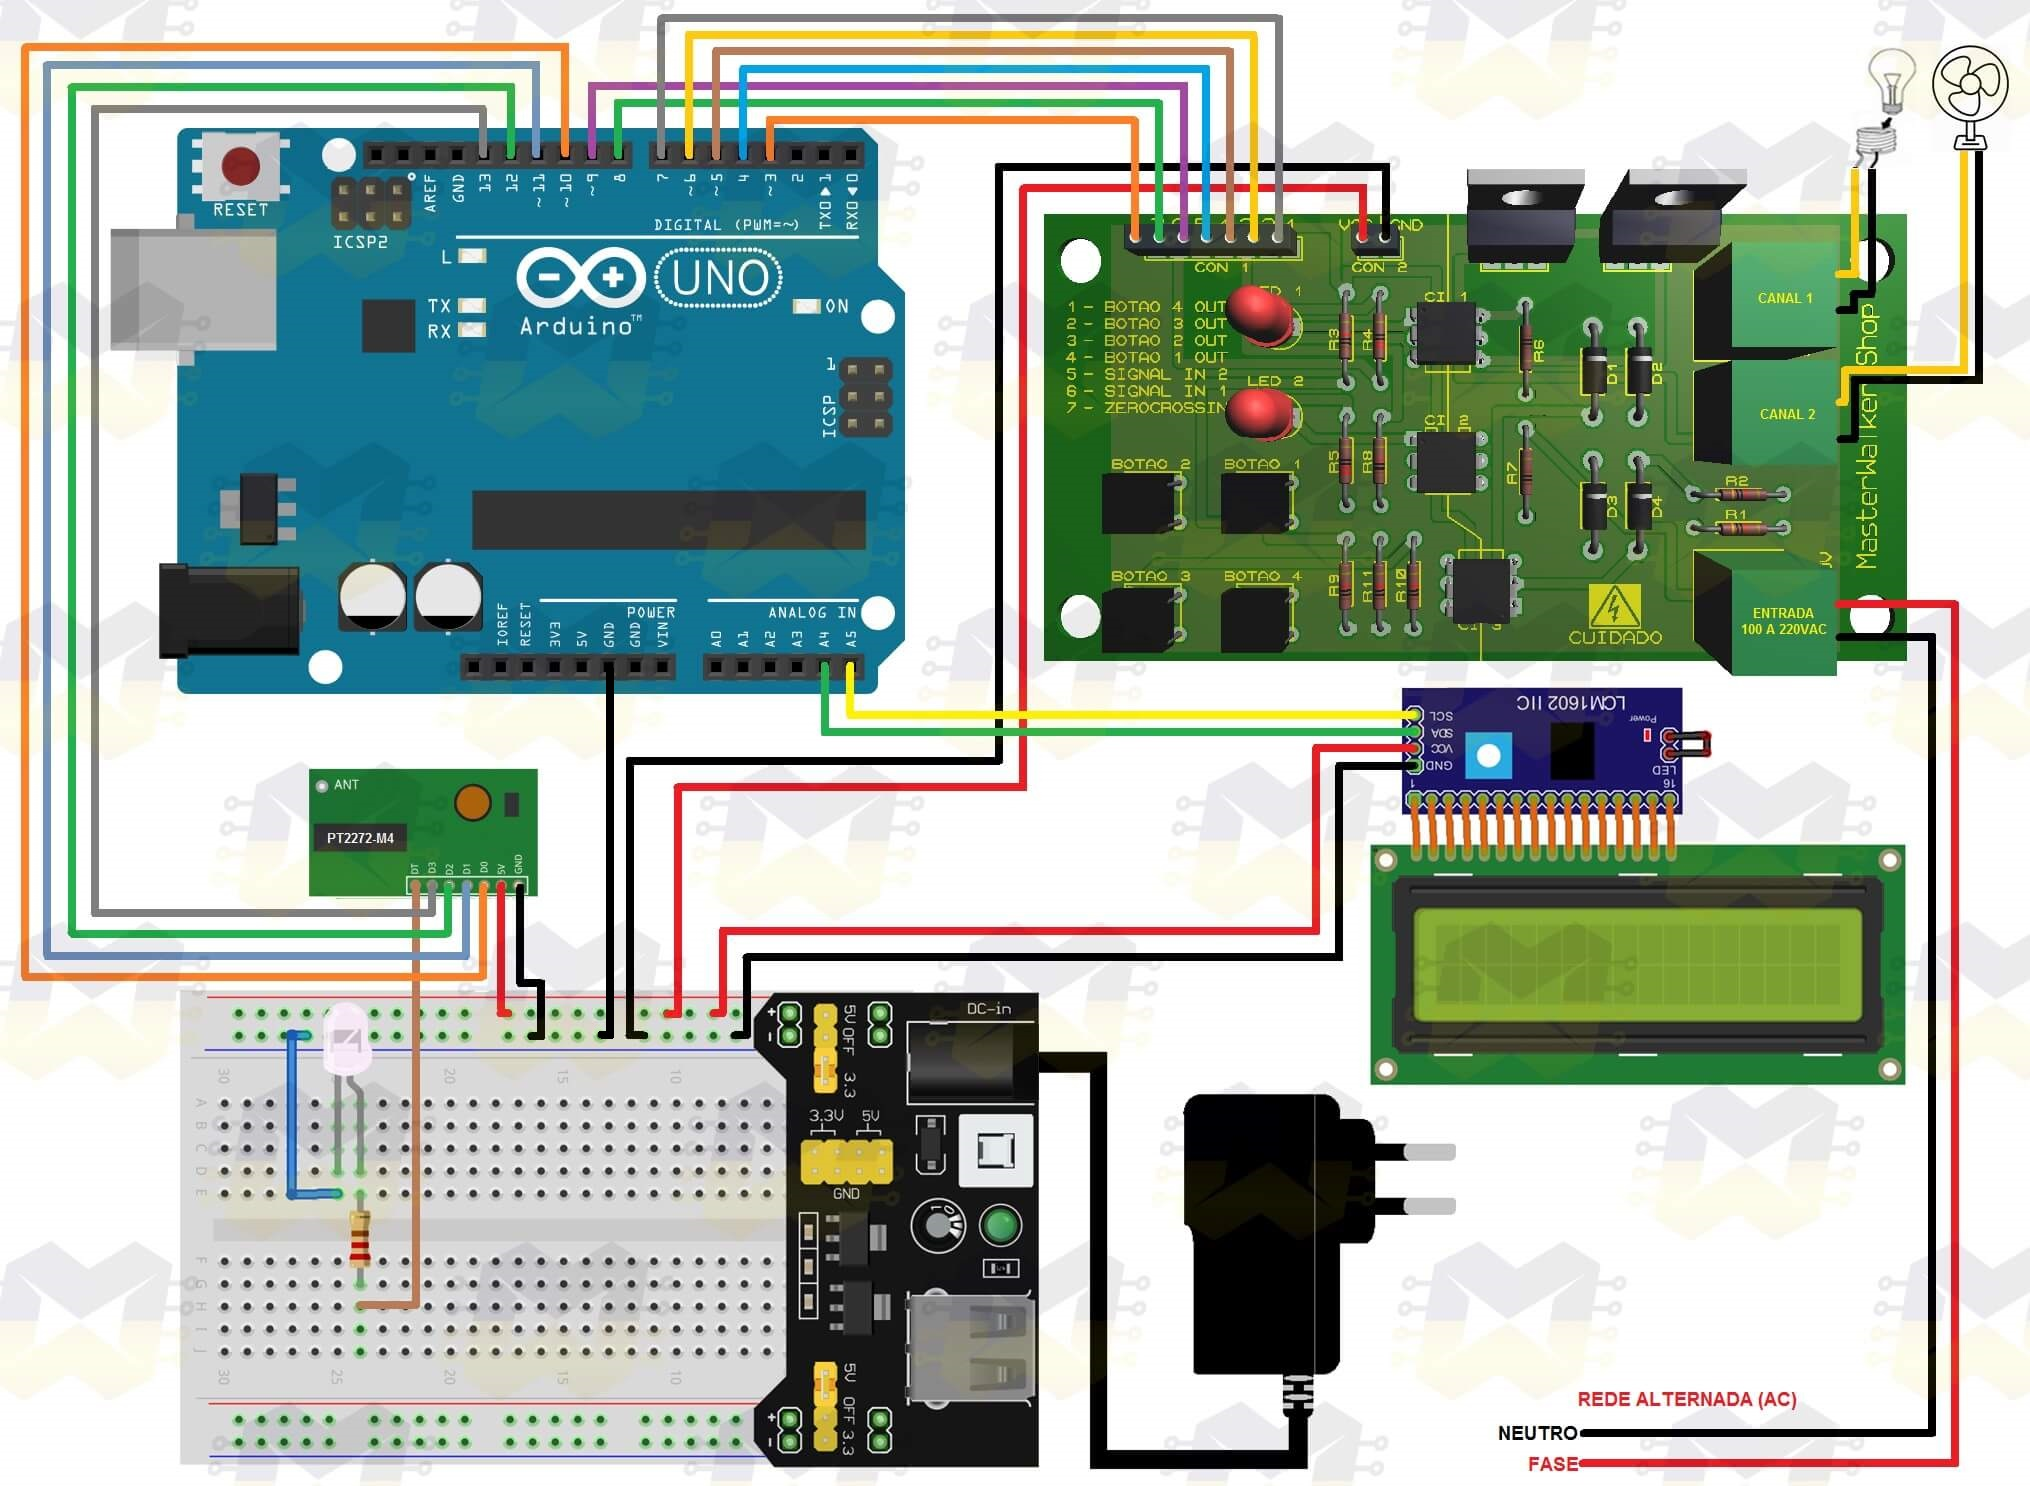 img03_arduino_controle_do_modulo_dimmer_ac_atraves_do_kit_rf_alternada_zero_crossing_disparo_triac_automacao_residencial